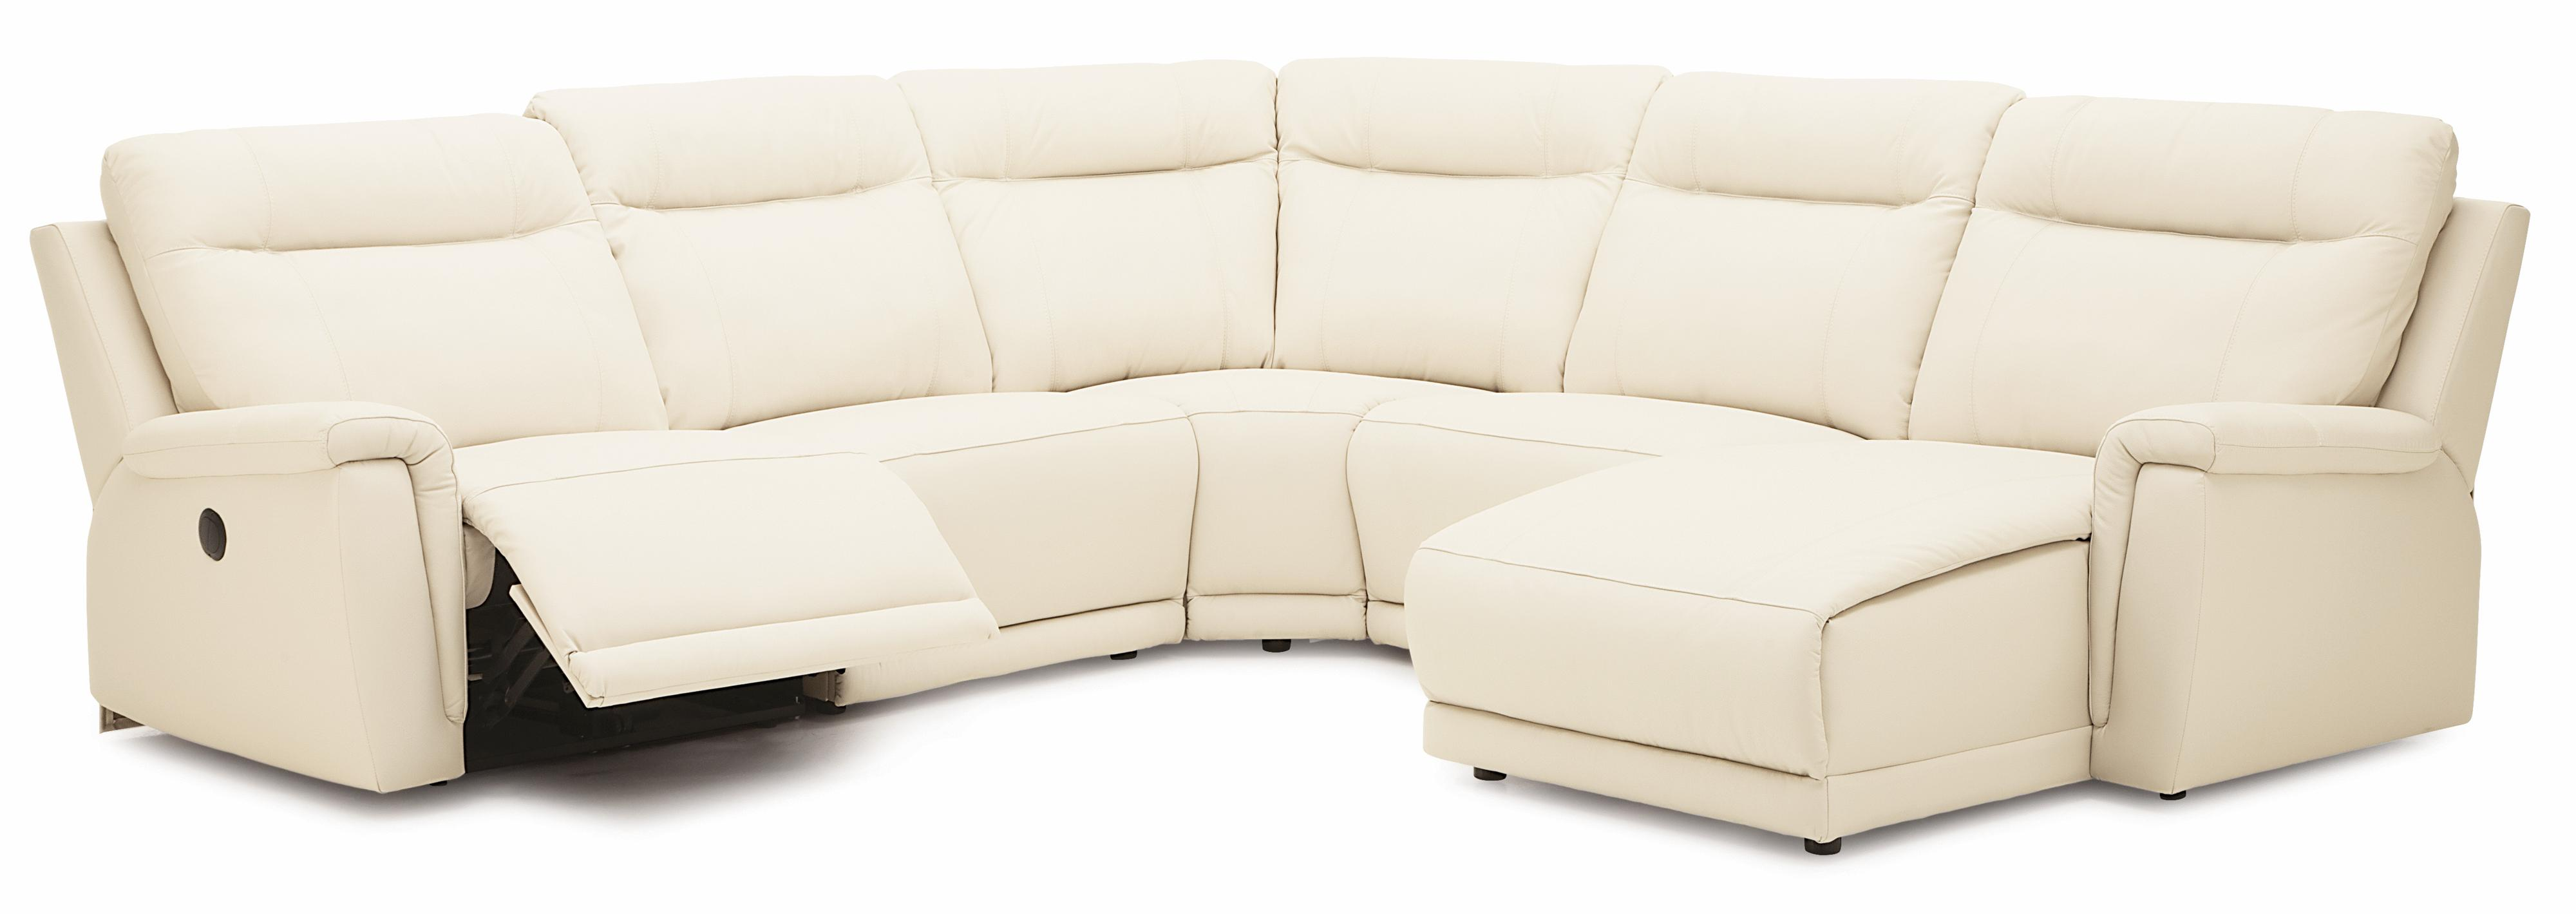 sofa w chaise quality beds australia palliser westpoint contemporary right hand facing